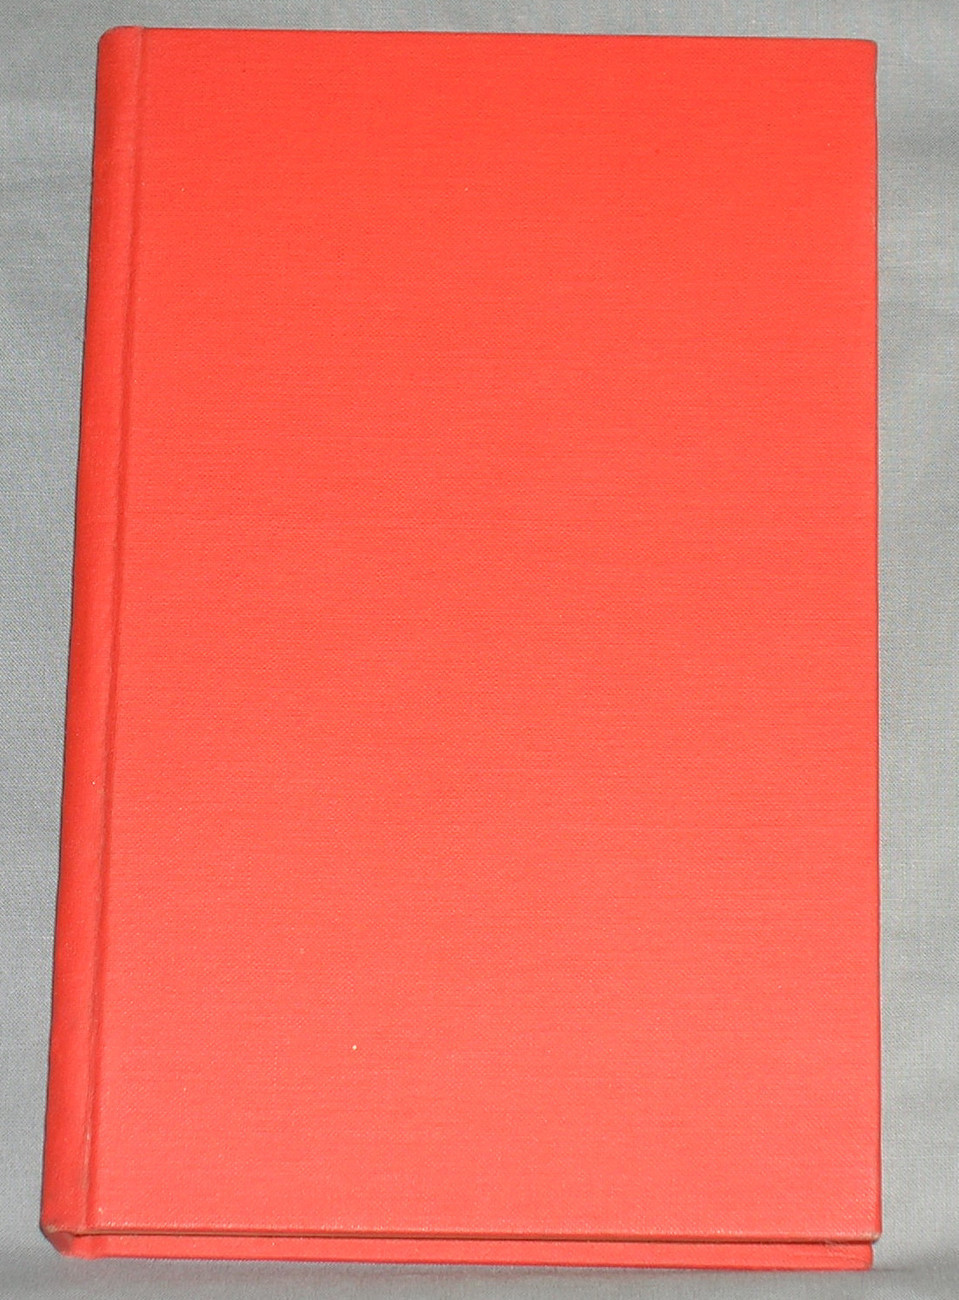 Magick in Theory and Practice Aleister Crowley Hardcover